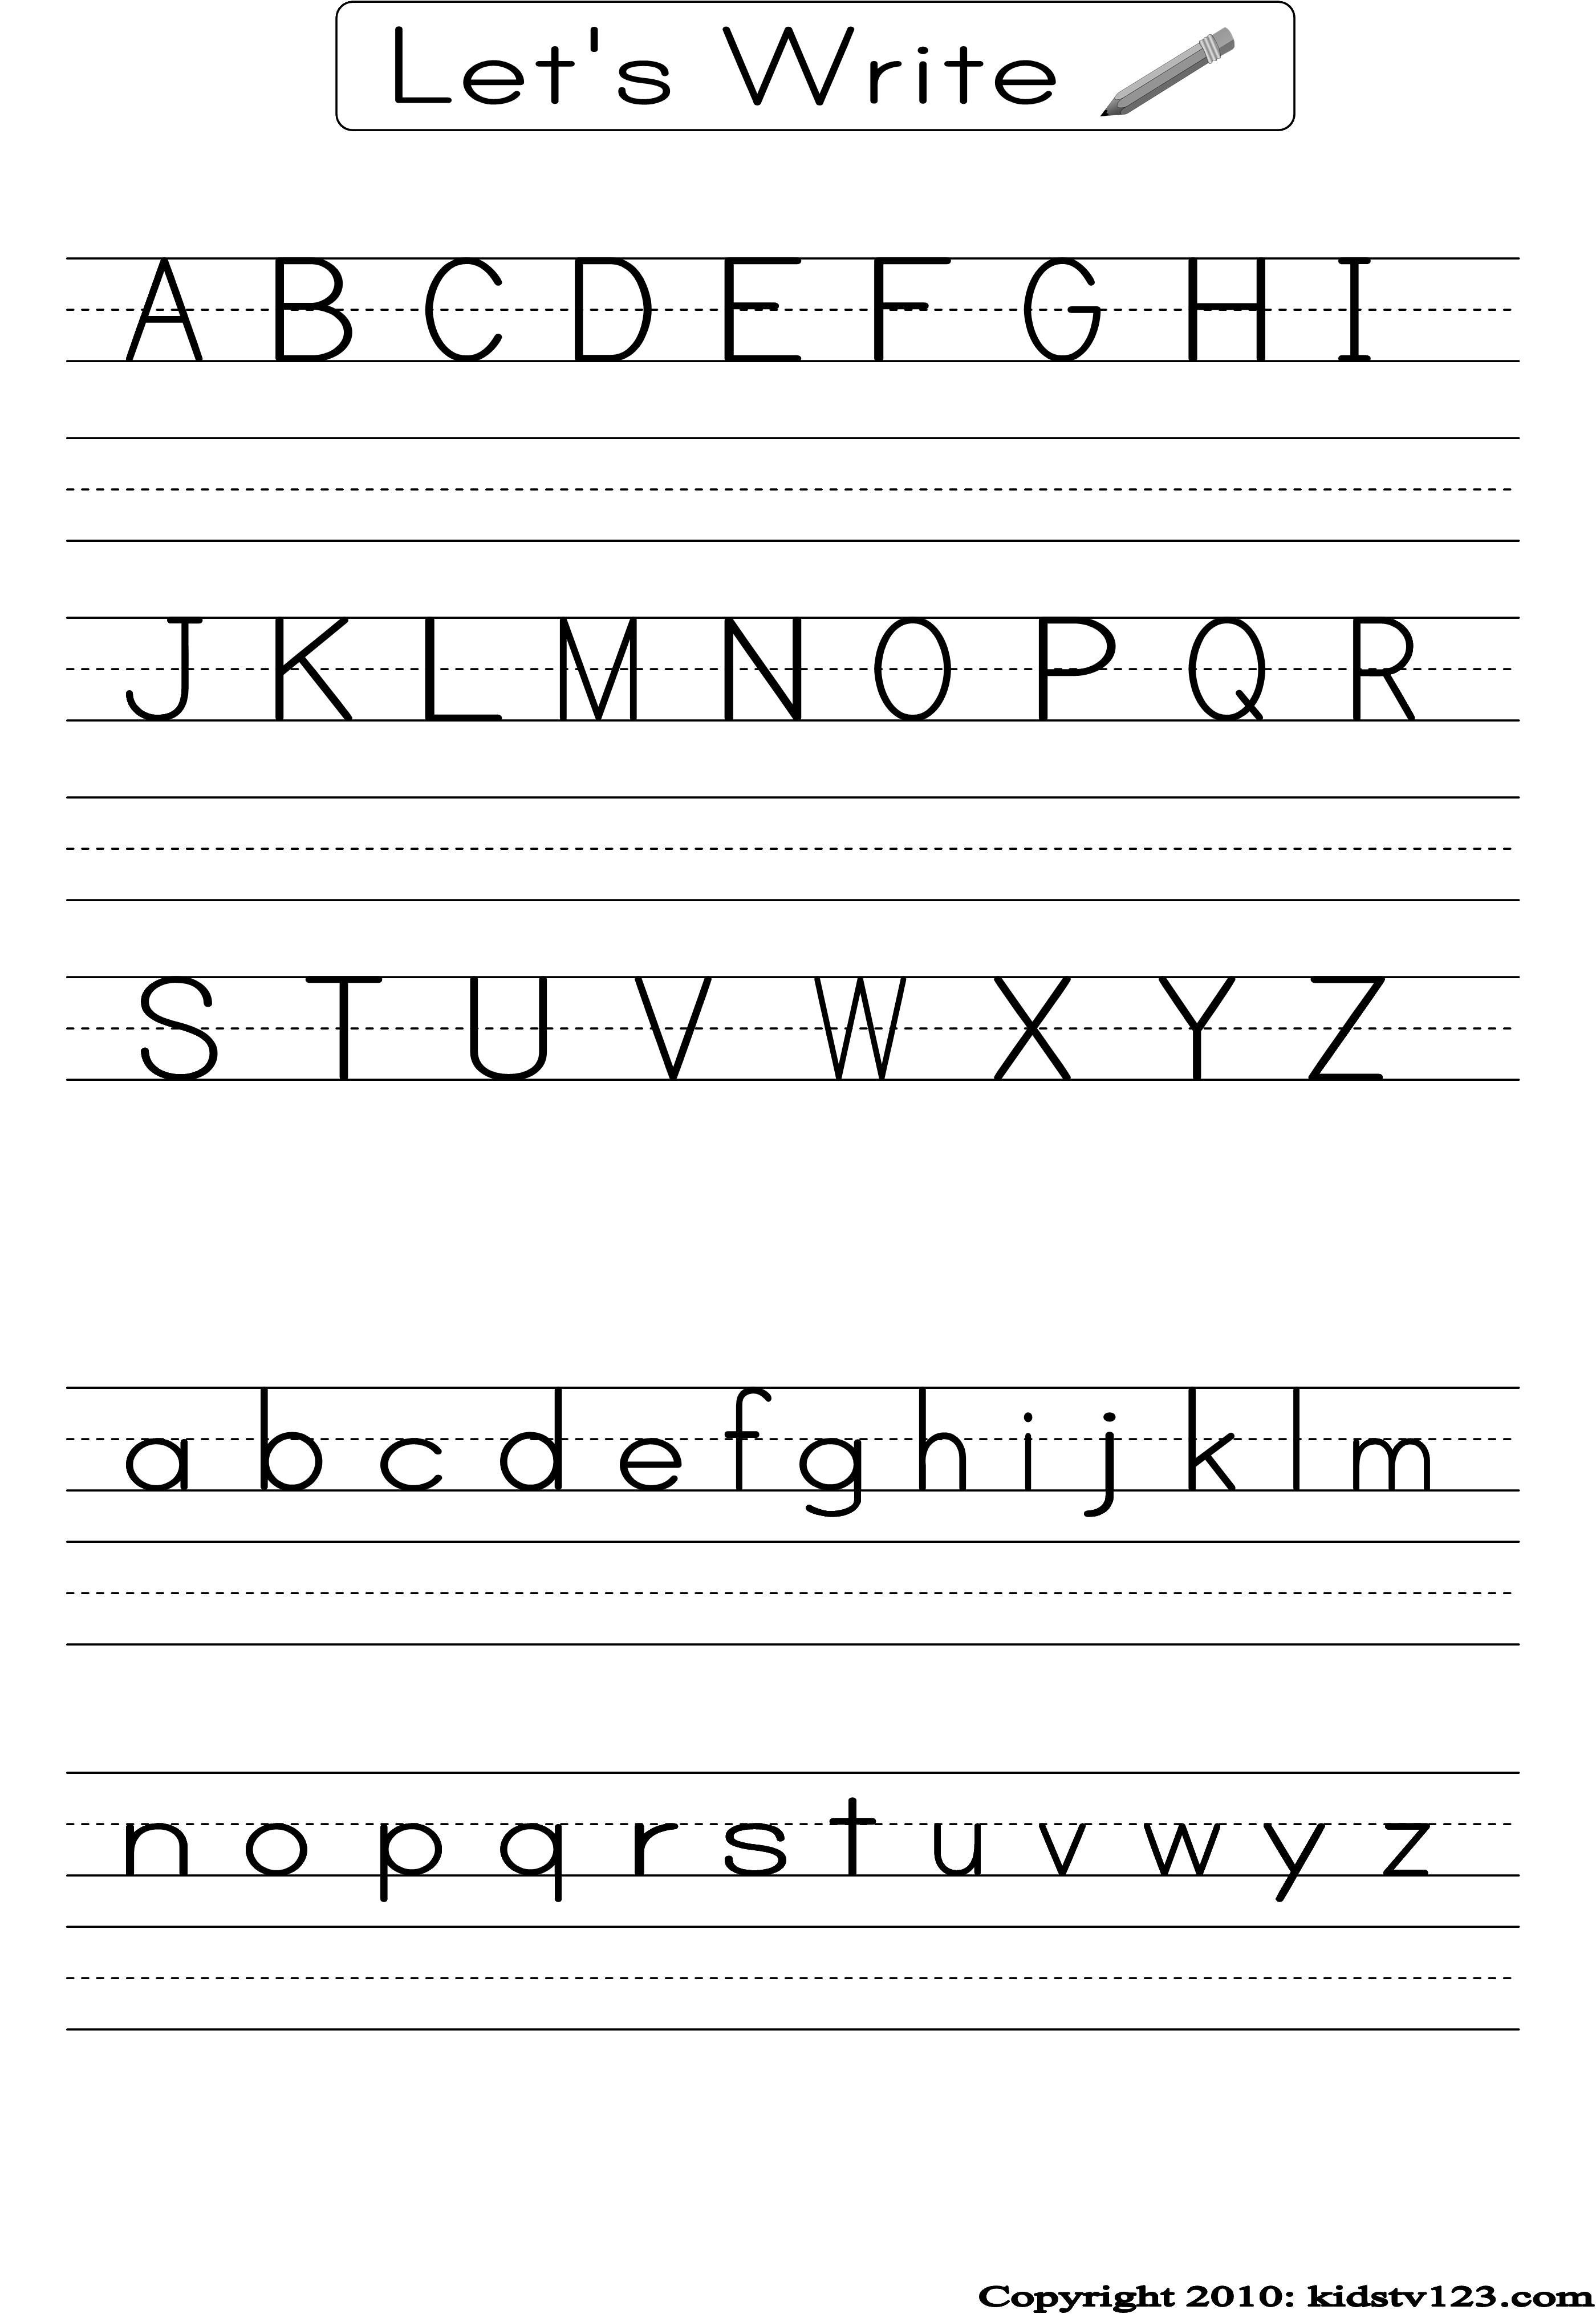 Worksheets Abc Handwriting Worksheets free printable alphabet worksheets preschool writing and pattern to print for beginners that are